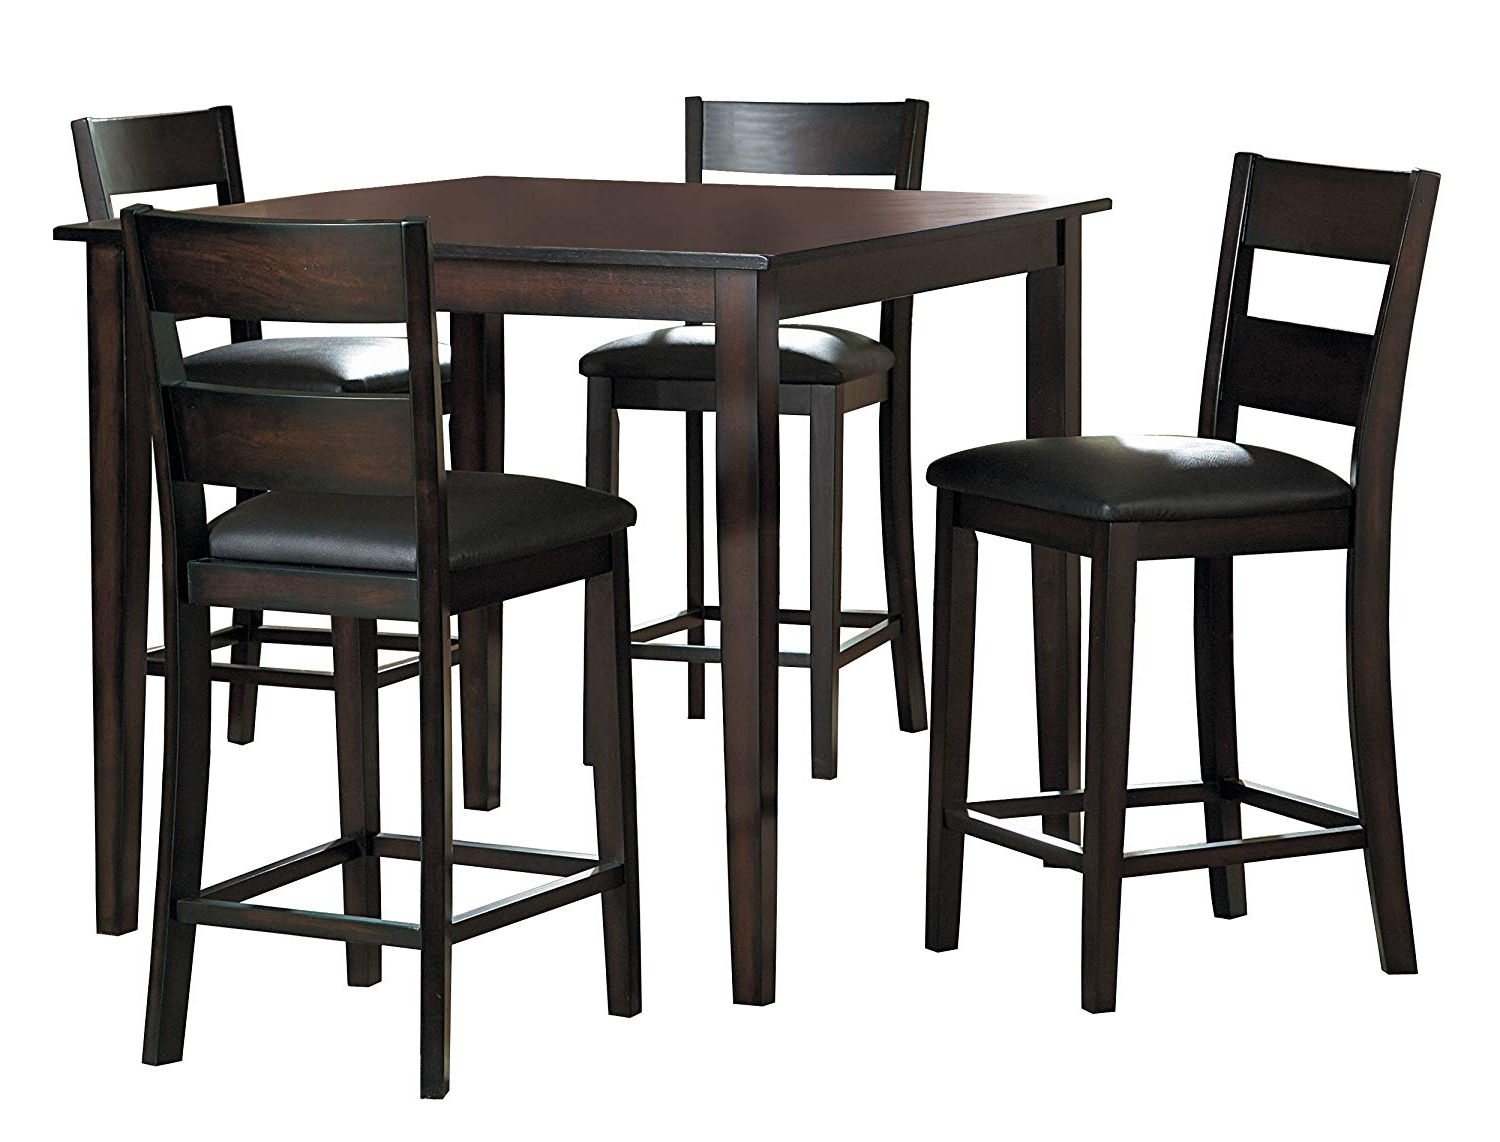 2020 Griffin Reclaimed Wood Bar-Height Tables throughout Homelegance Griffin 5-Piece Counter Height Dining Set, Espresso